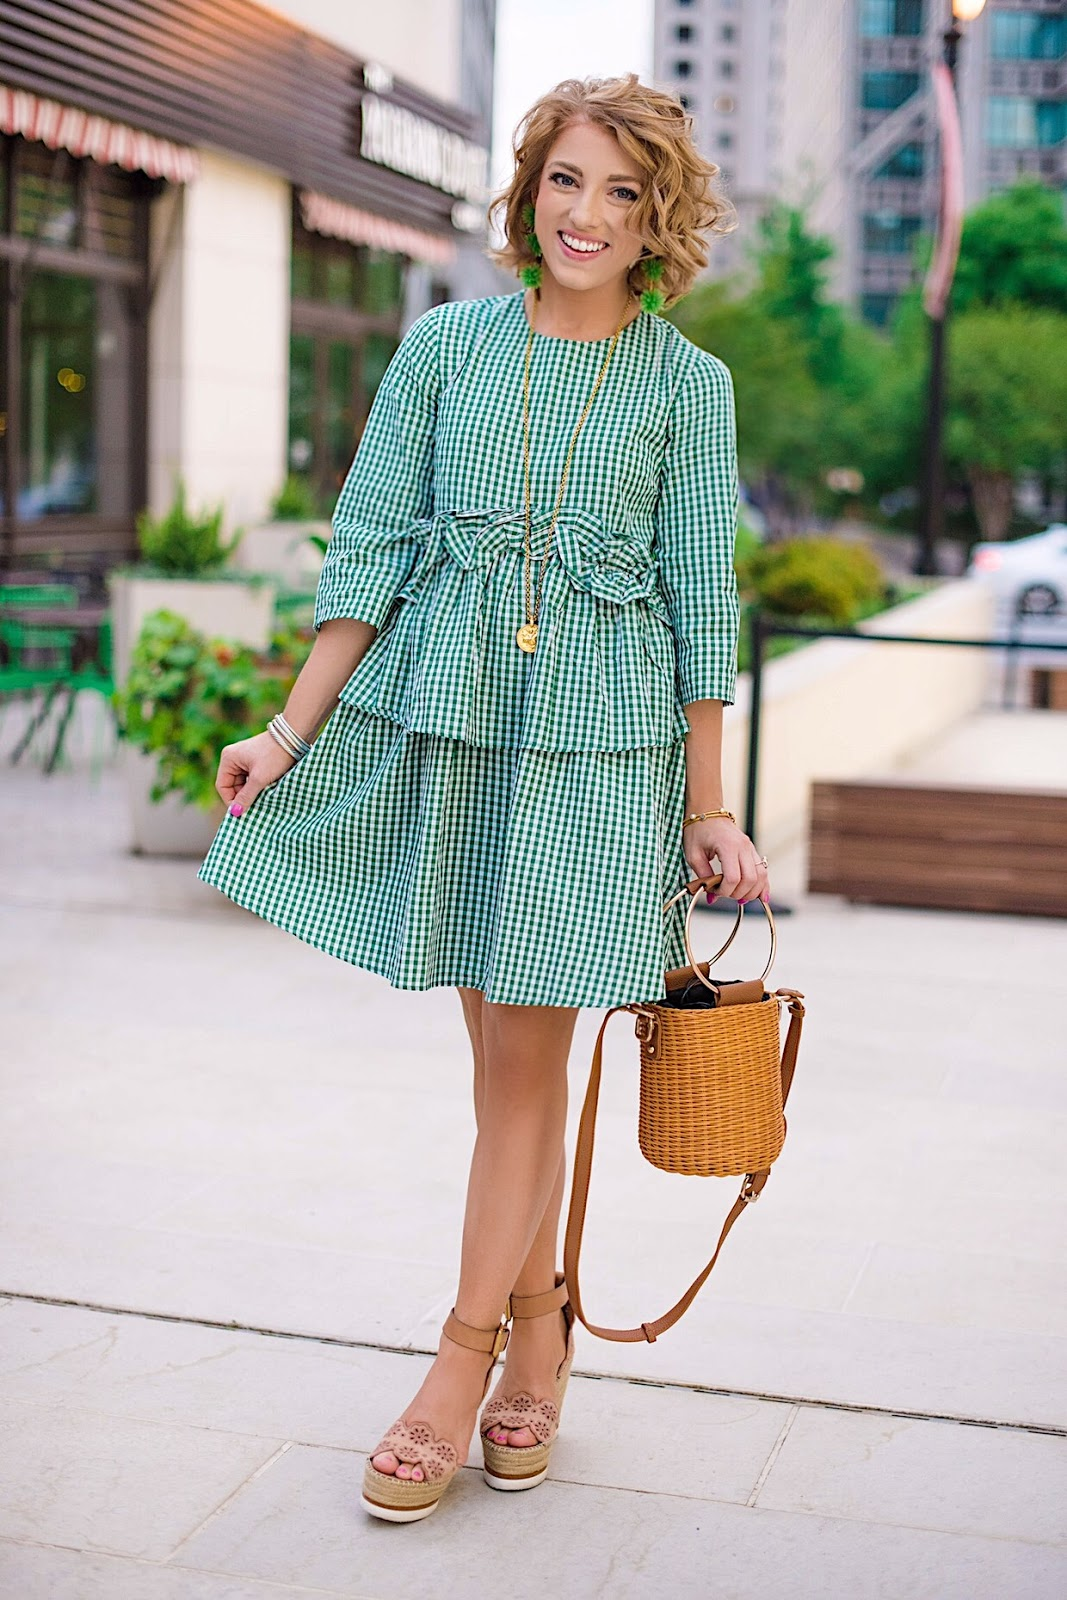 Emerald Green Ruffle Gingham Dress + Wicker Basket Bag - Something Delightful Blog